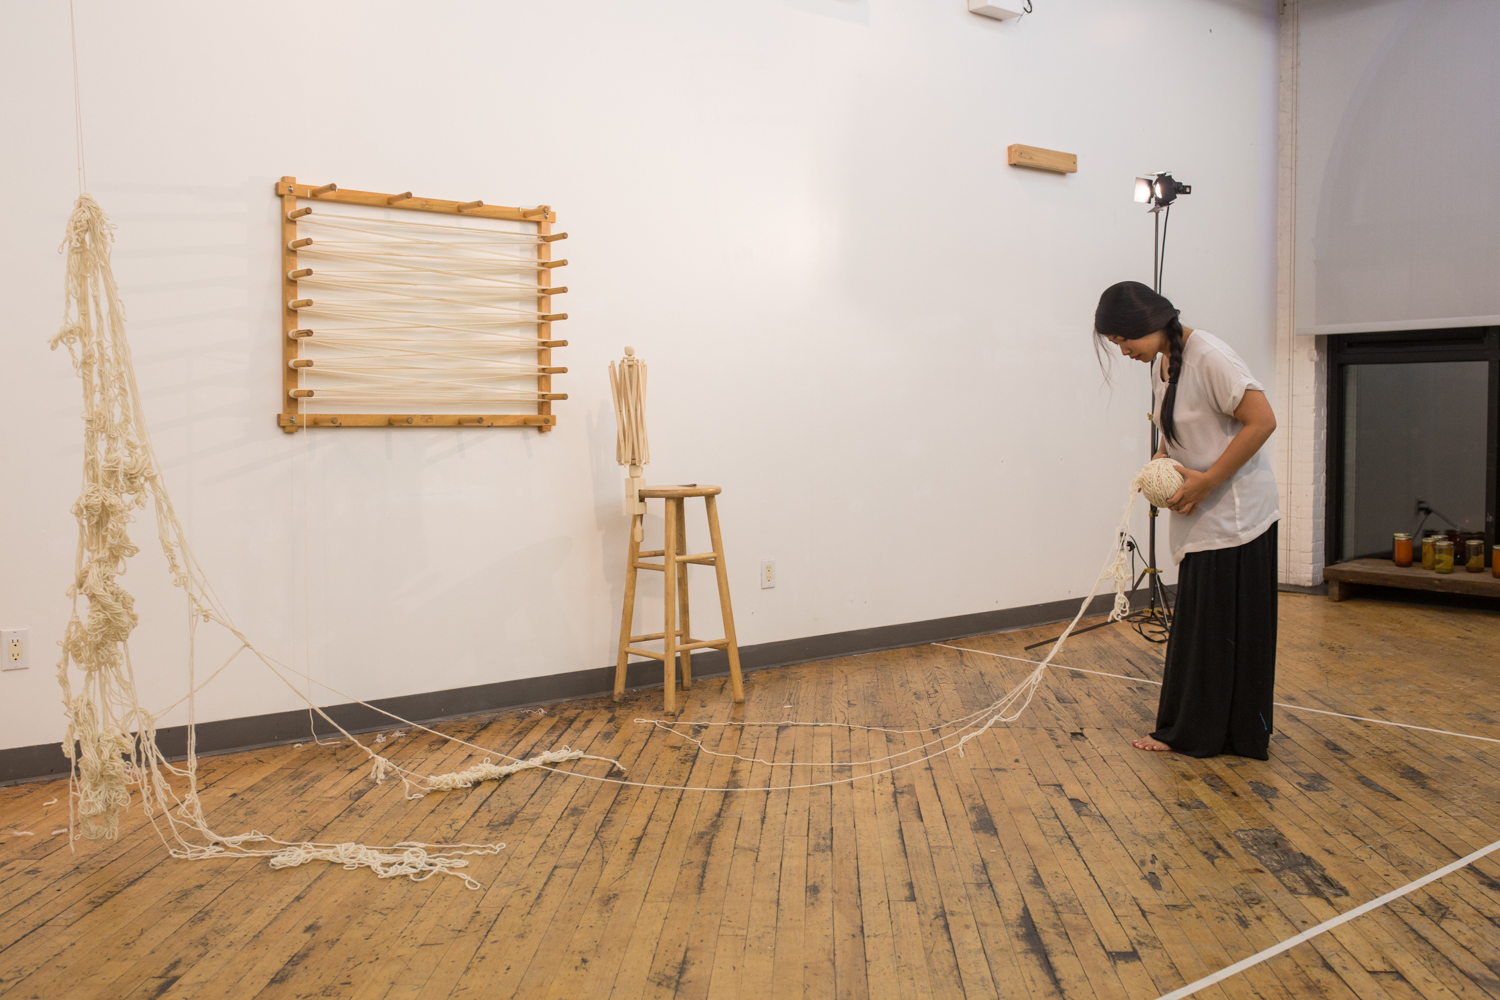 The artist stands far away from the suspended/knotted yarn as she wraps the untangled portion onto the ball of yarn (around 5 inches in diameter) in her hand.